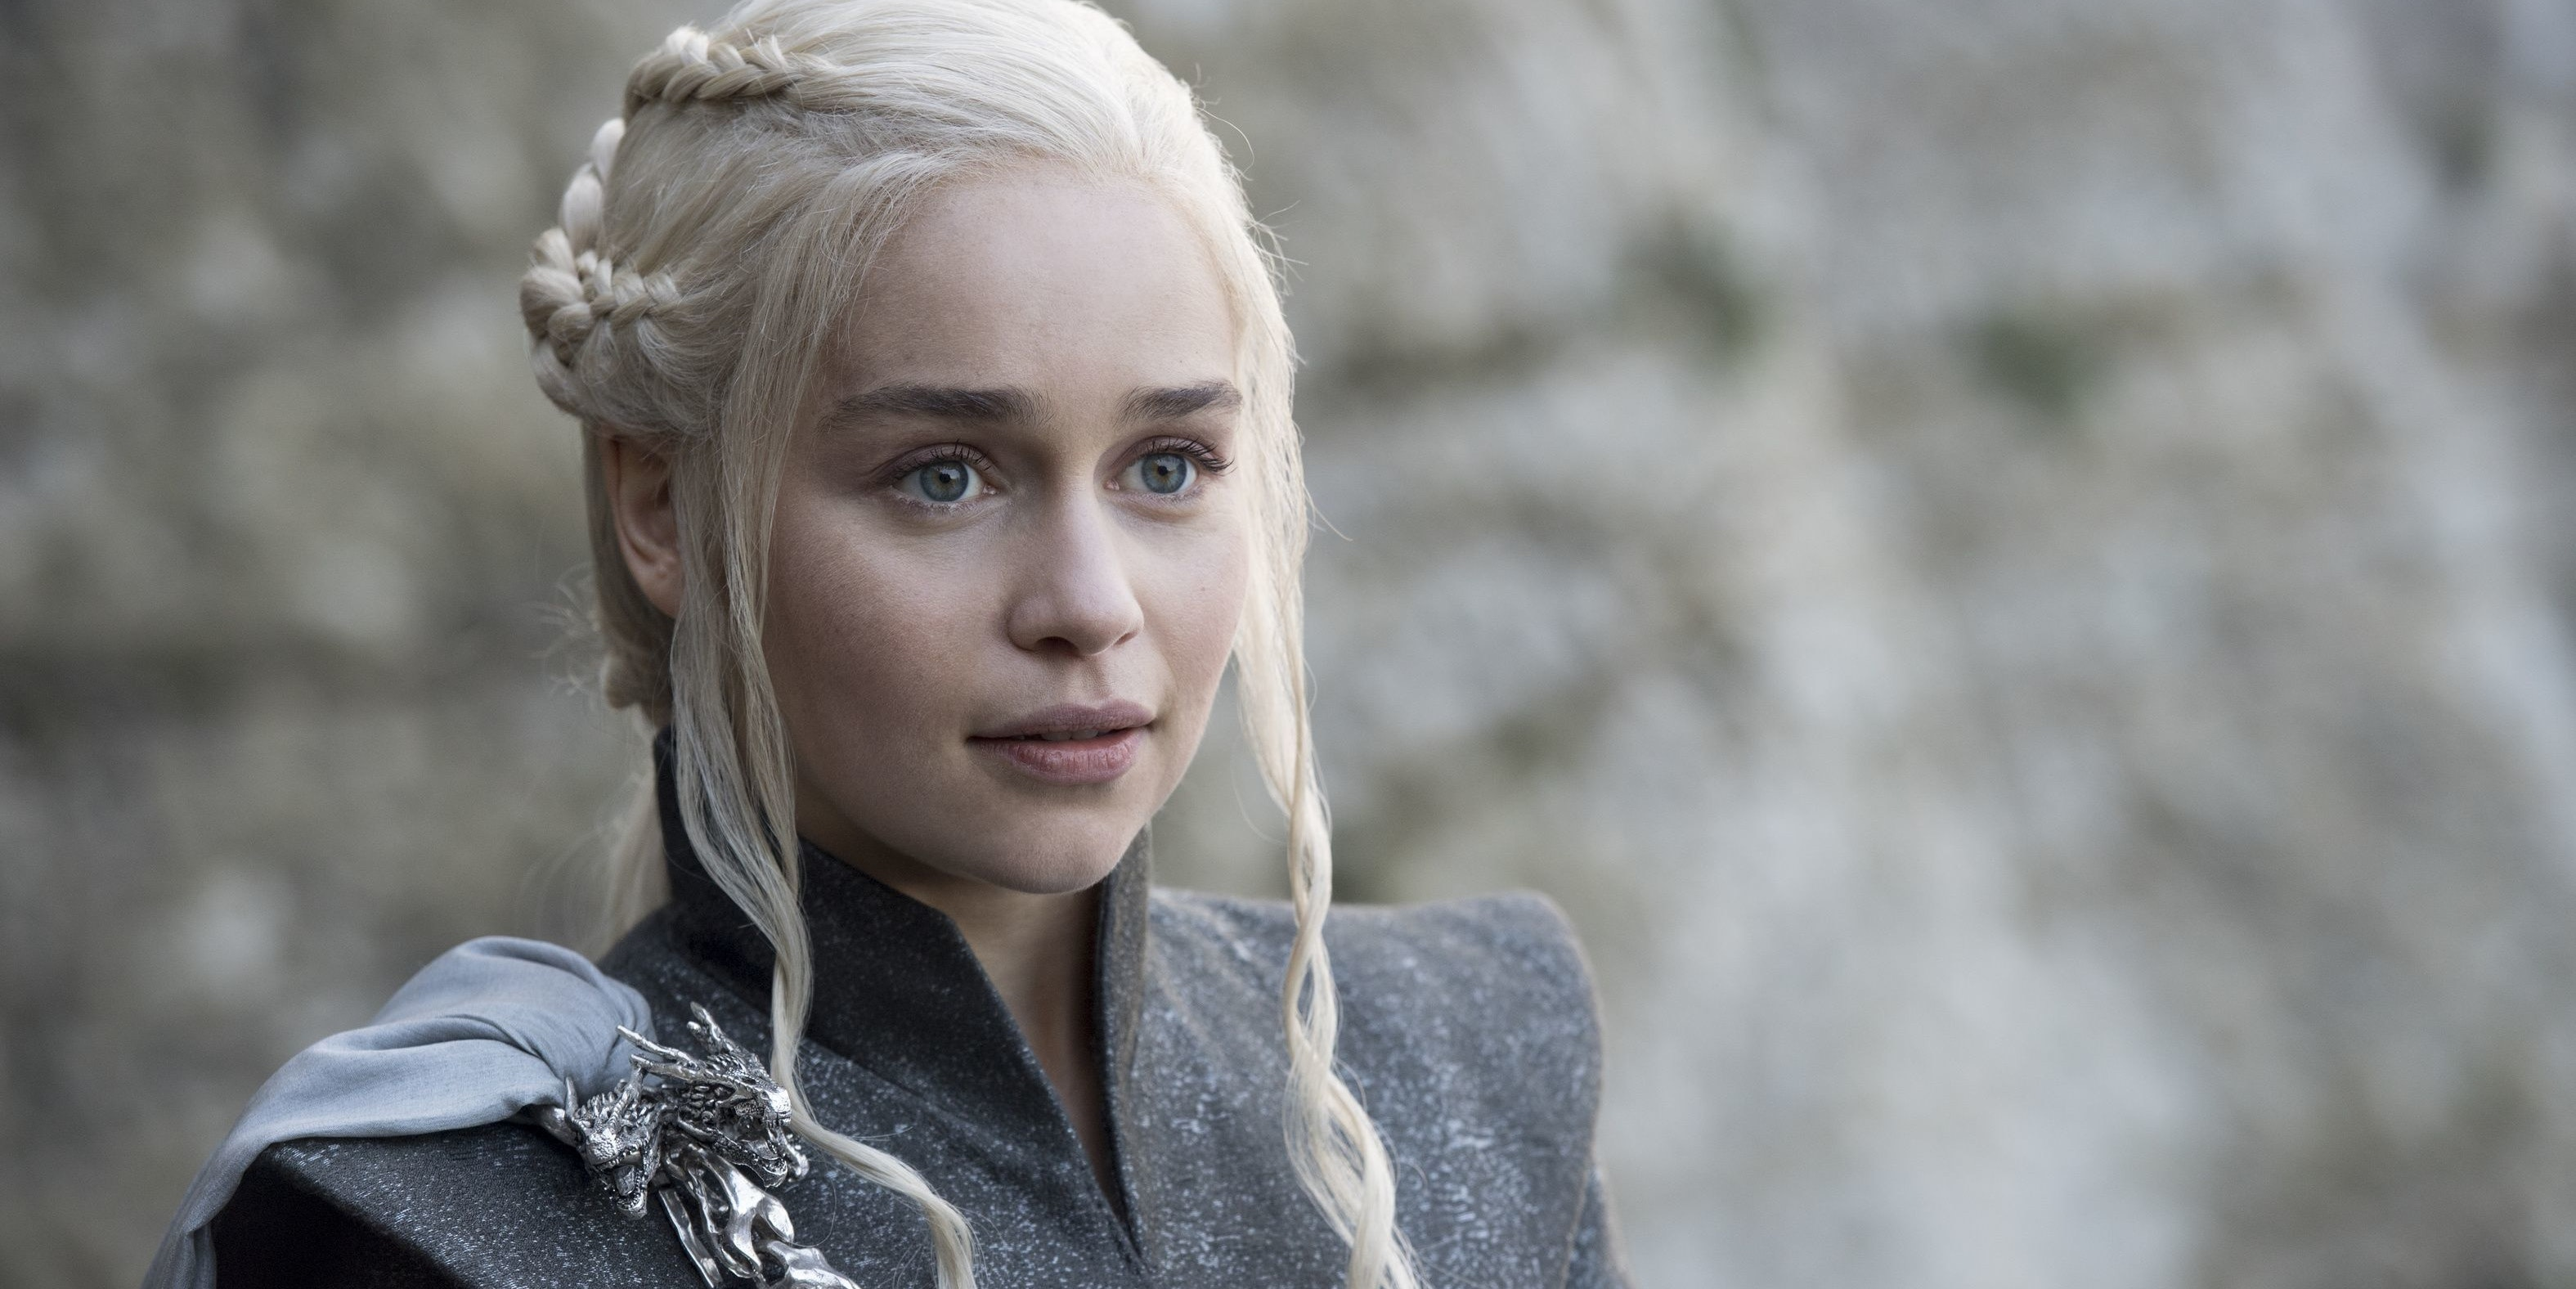 'Dany's Game of Thrones' S1 Prophecy May Confirm She's Pregnant in Season 8